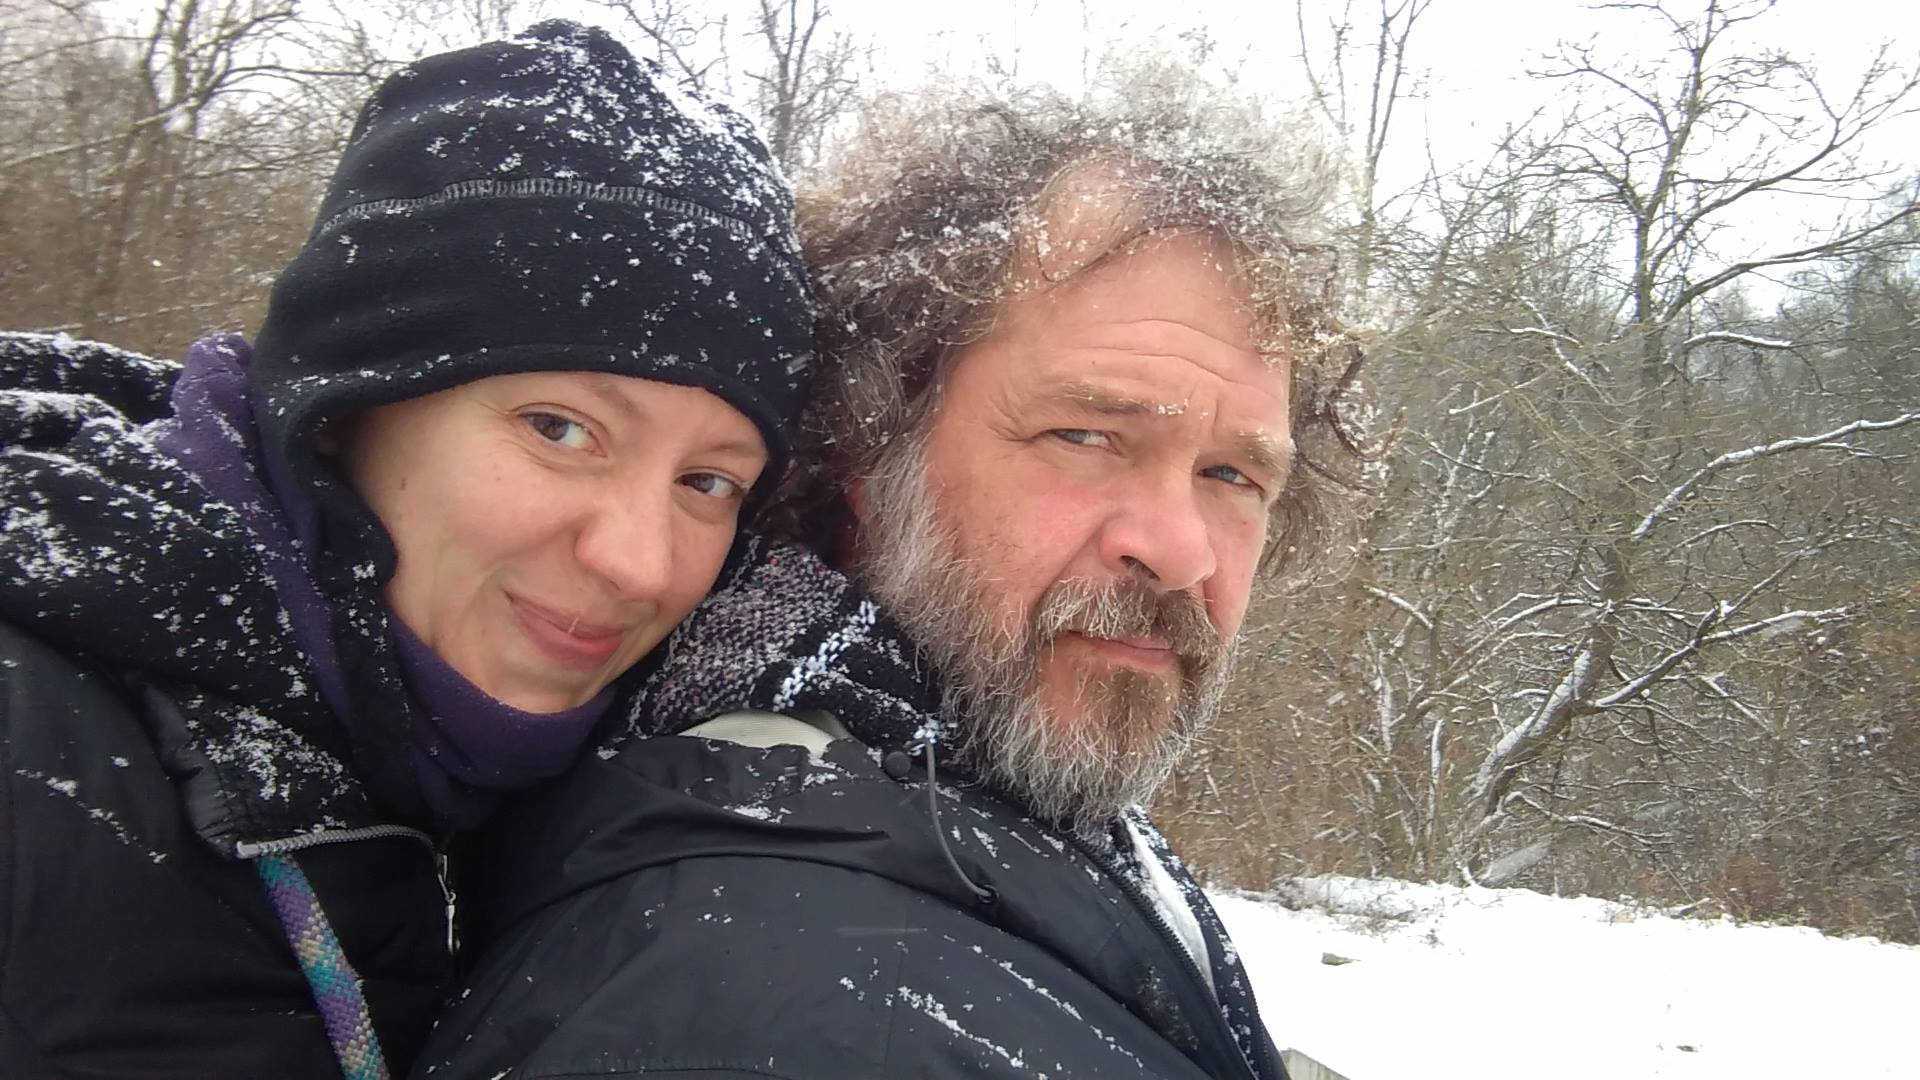 Mark Wacht and his wife Livvi Lantry-Wacht posing for pictures in snow